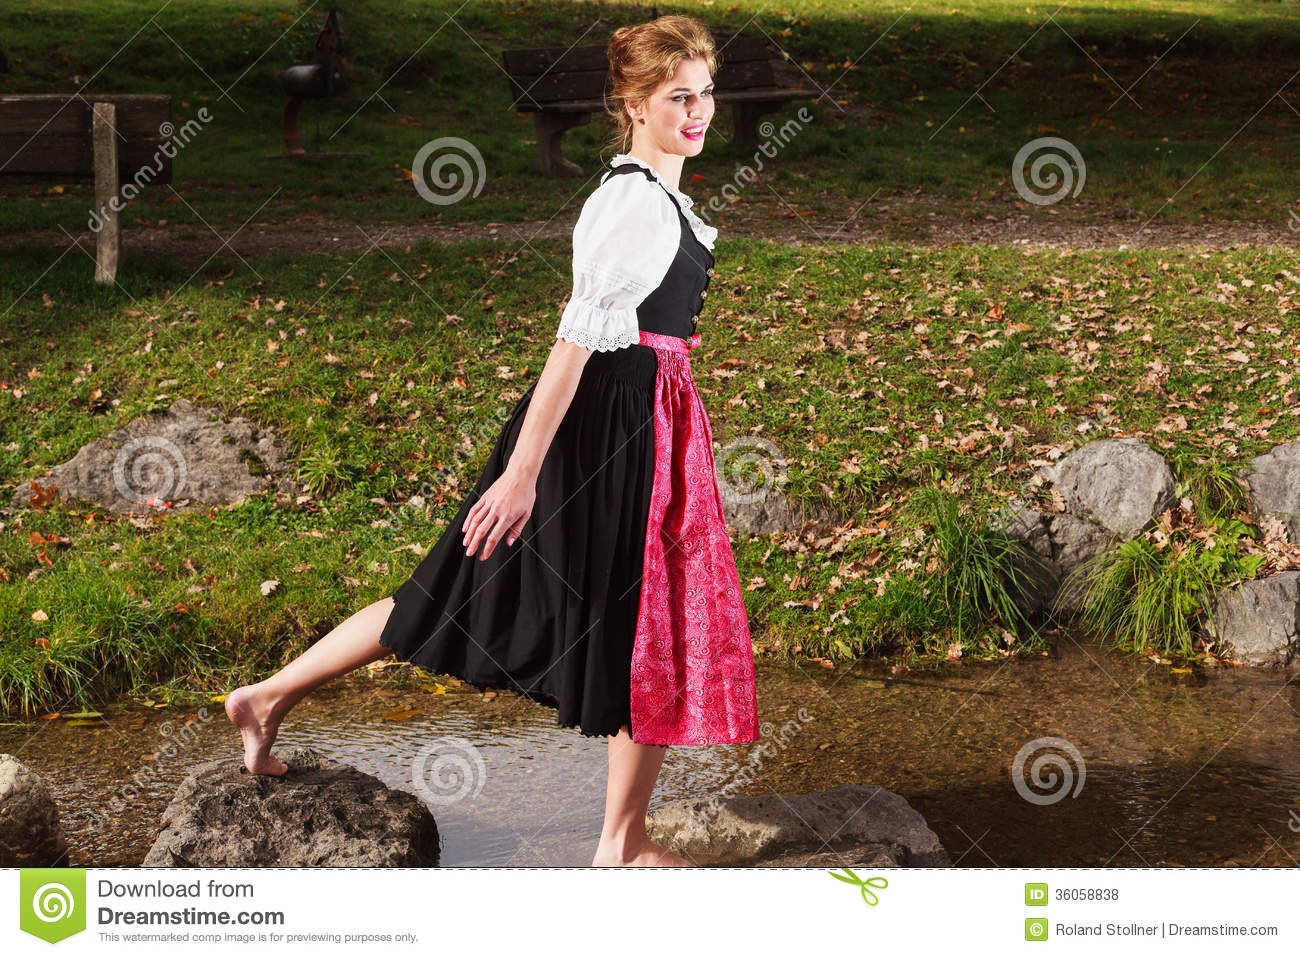 https://thumbs.dreamstime.com/z/beautiful-barefoot-woman-dirndl-playing-mountain-stream-traditional-german-as-enjoys-nature-36058838.jpg